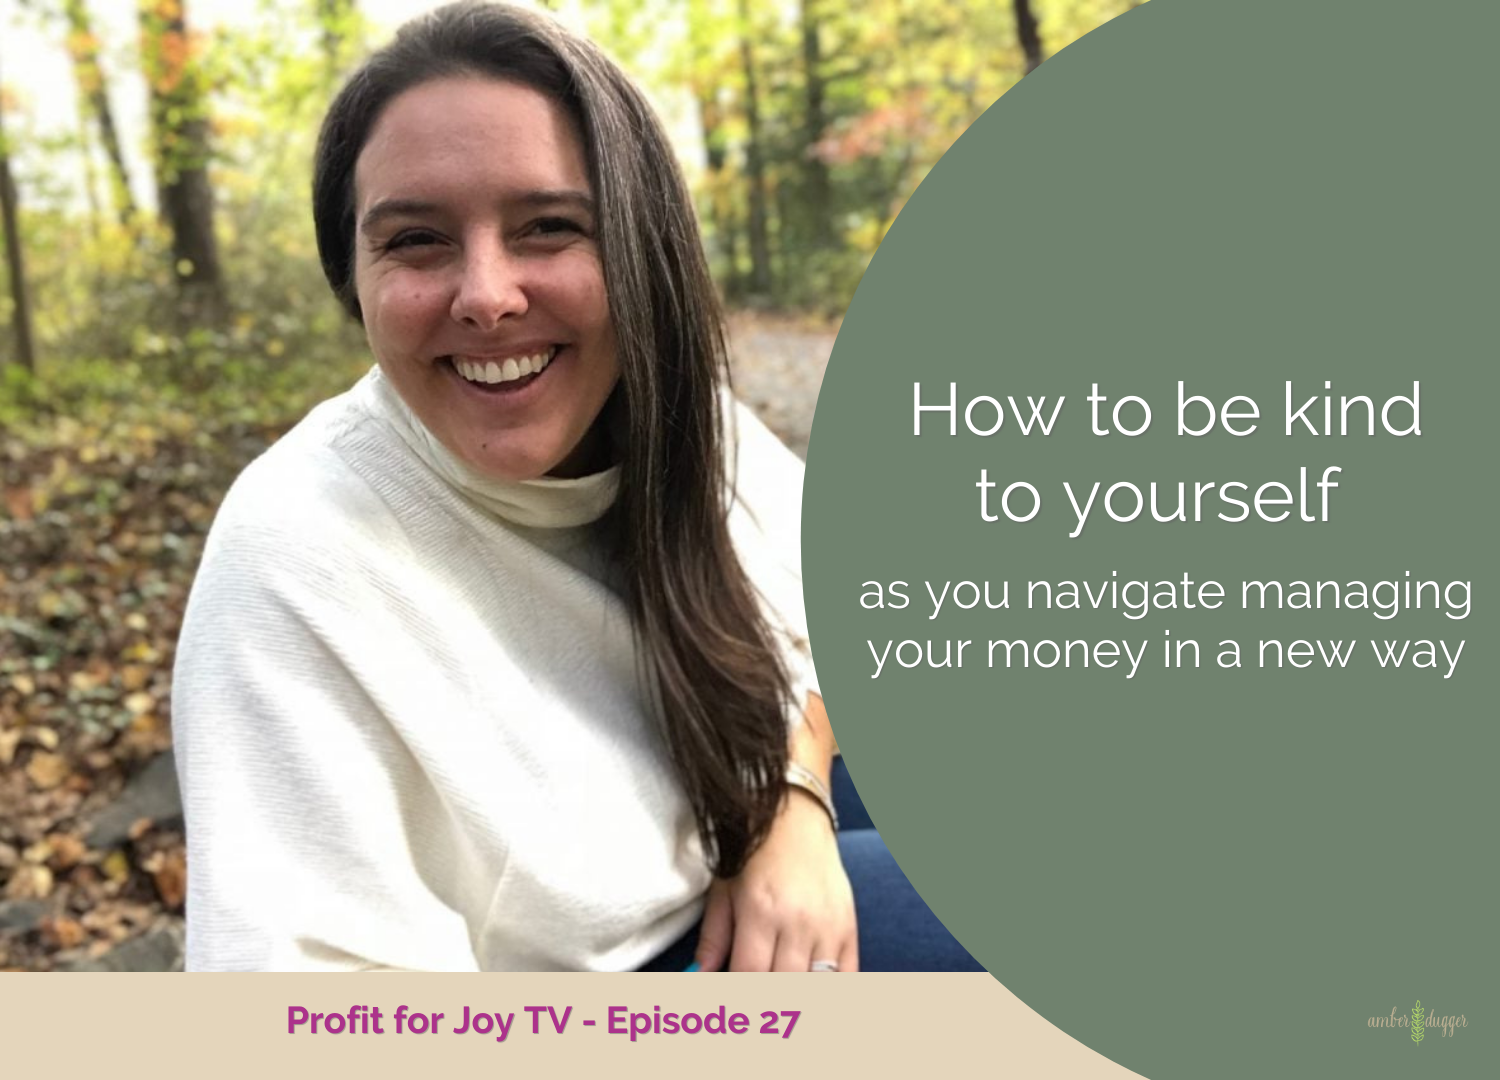 How to be kind to yourself as you navigate managing your money in a new way